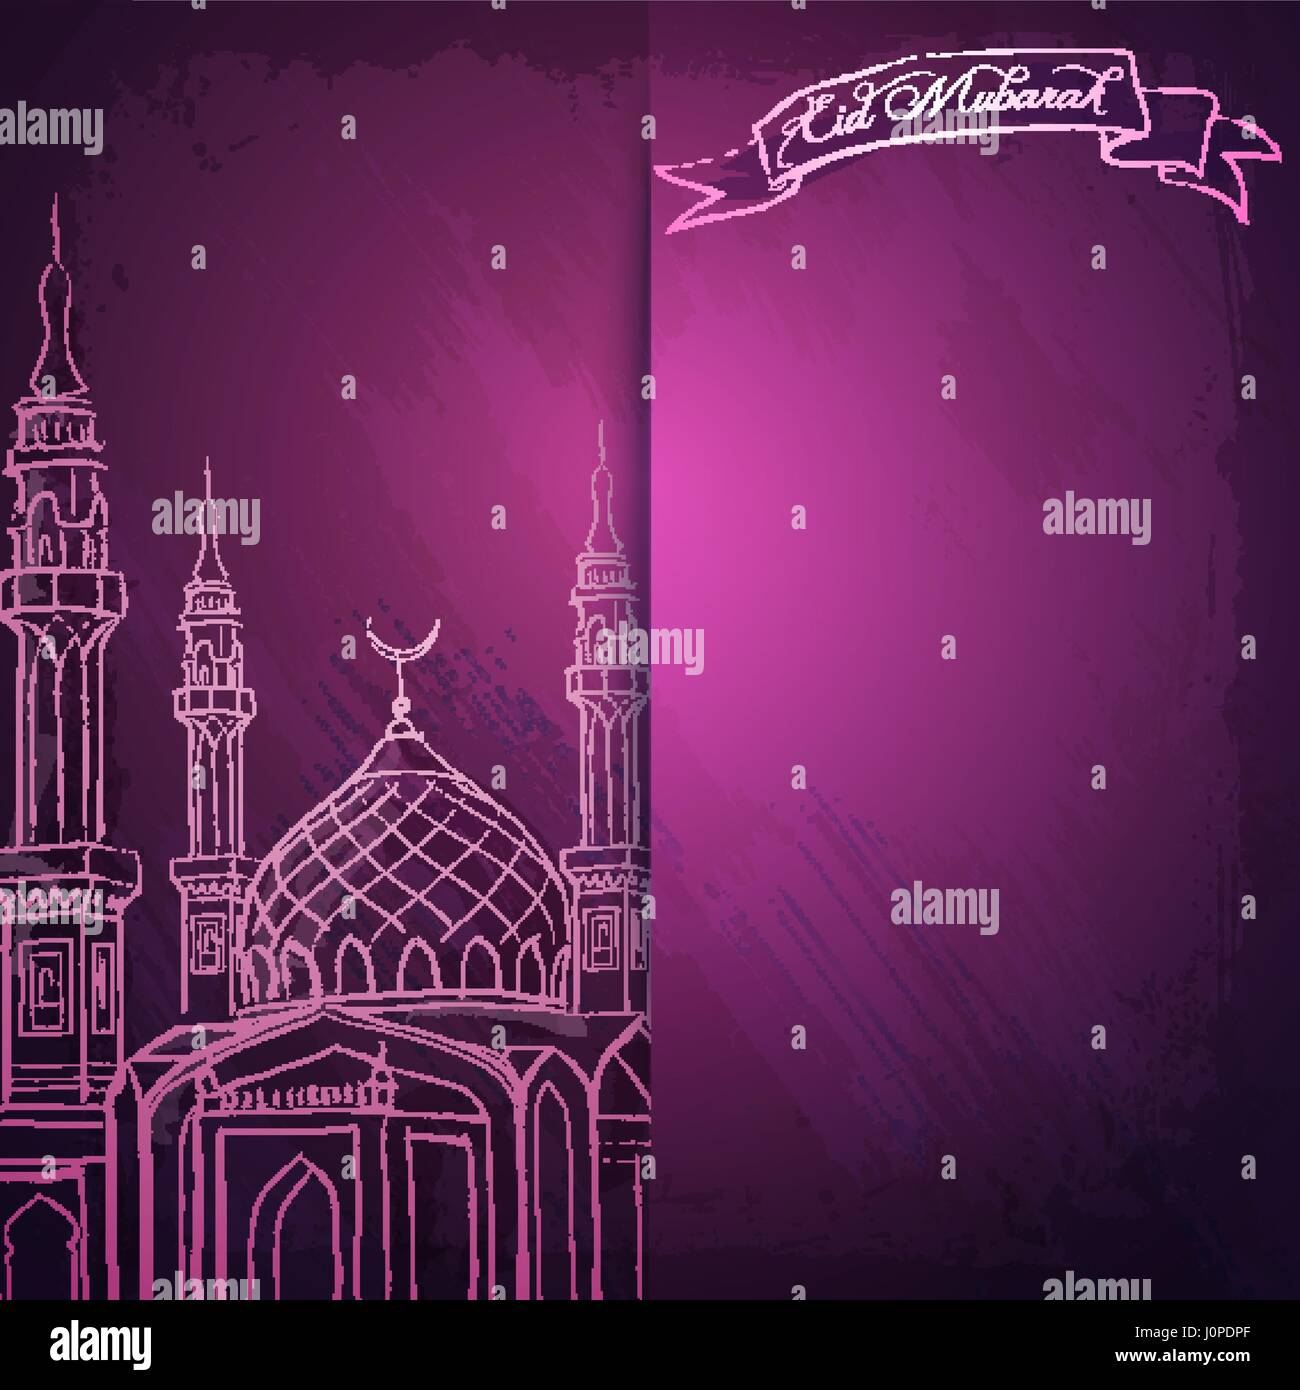 eid mubarak greeting card and islamic banner background stock vector image art alamy https www alamy com stock photo eid mubarak greeting card and islamic banner background 138176711 html